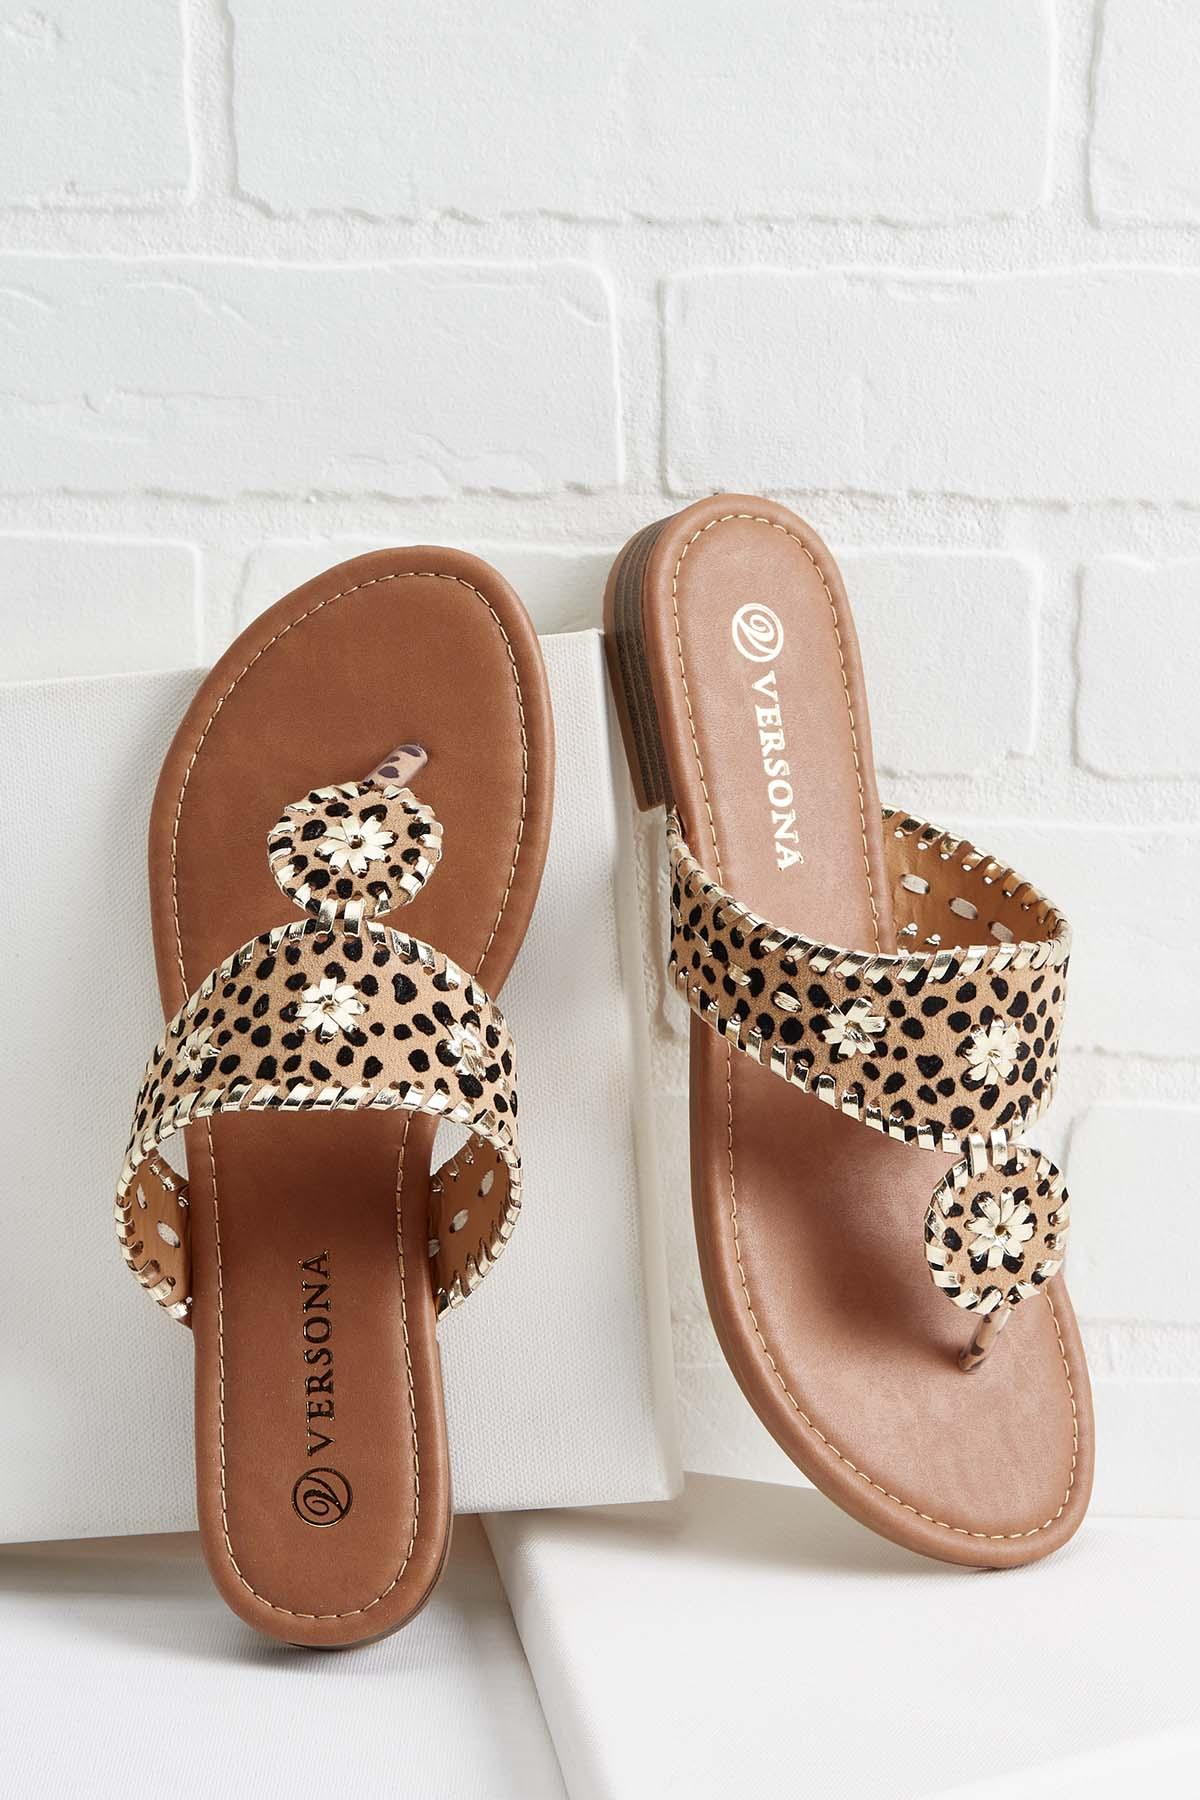 Back To The Sand Sandals